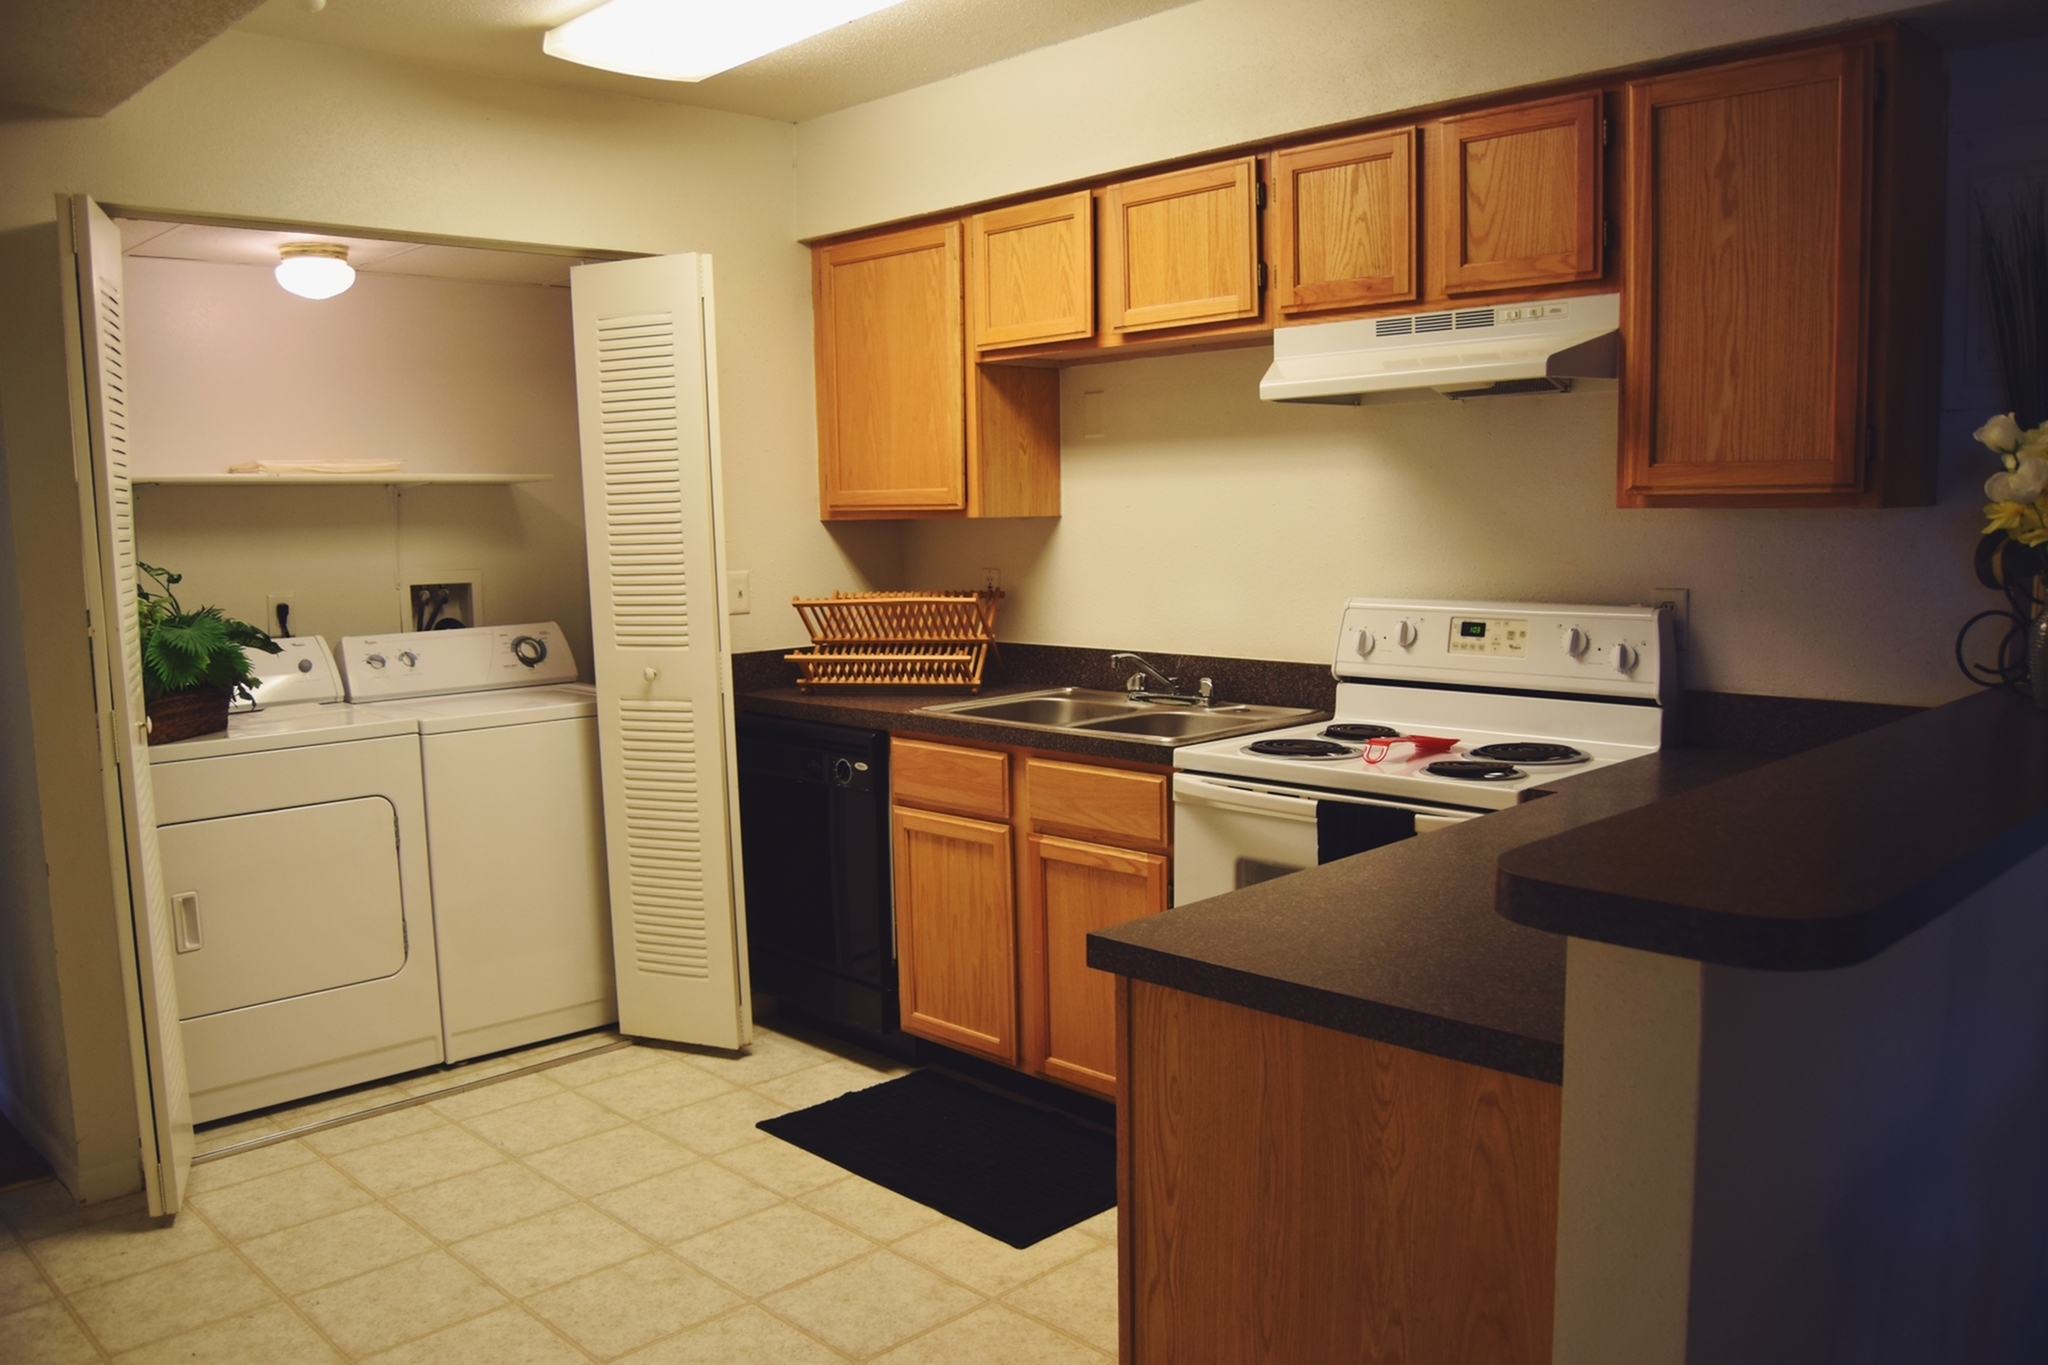 Apartments Near Western Illinois Edison and Pullman for Western Illinois University Students in Macomb, IL